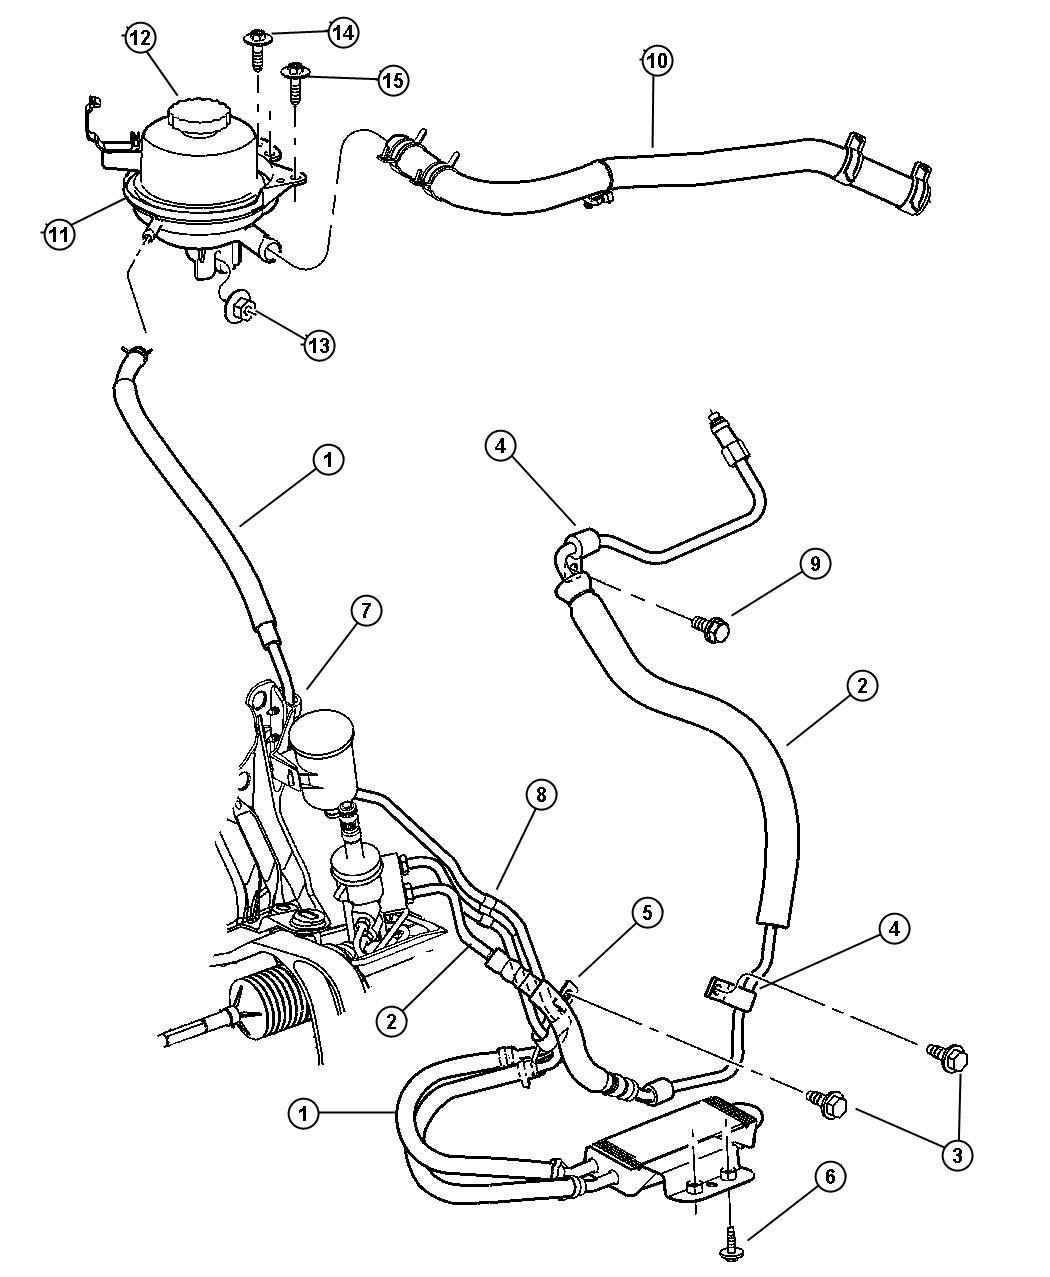 1999 dodge grand caravan rack and pinion wiring diagram for 1999 plymouth voyager at ww1